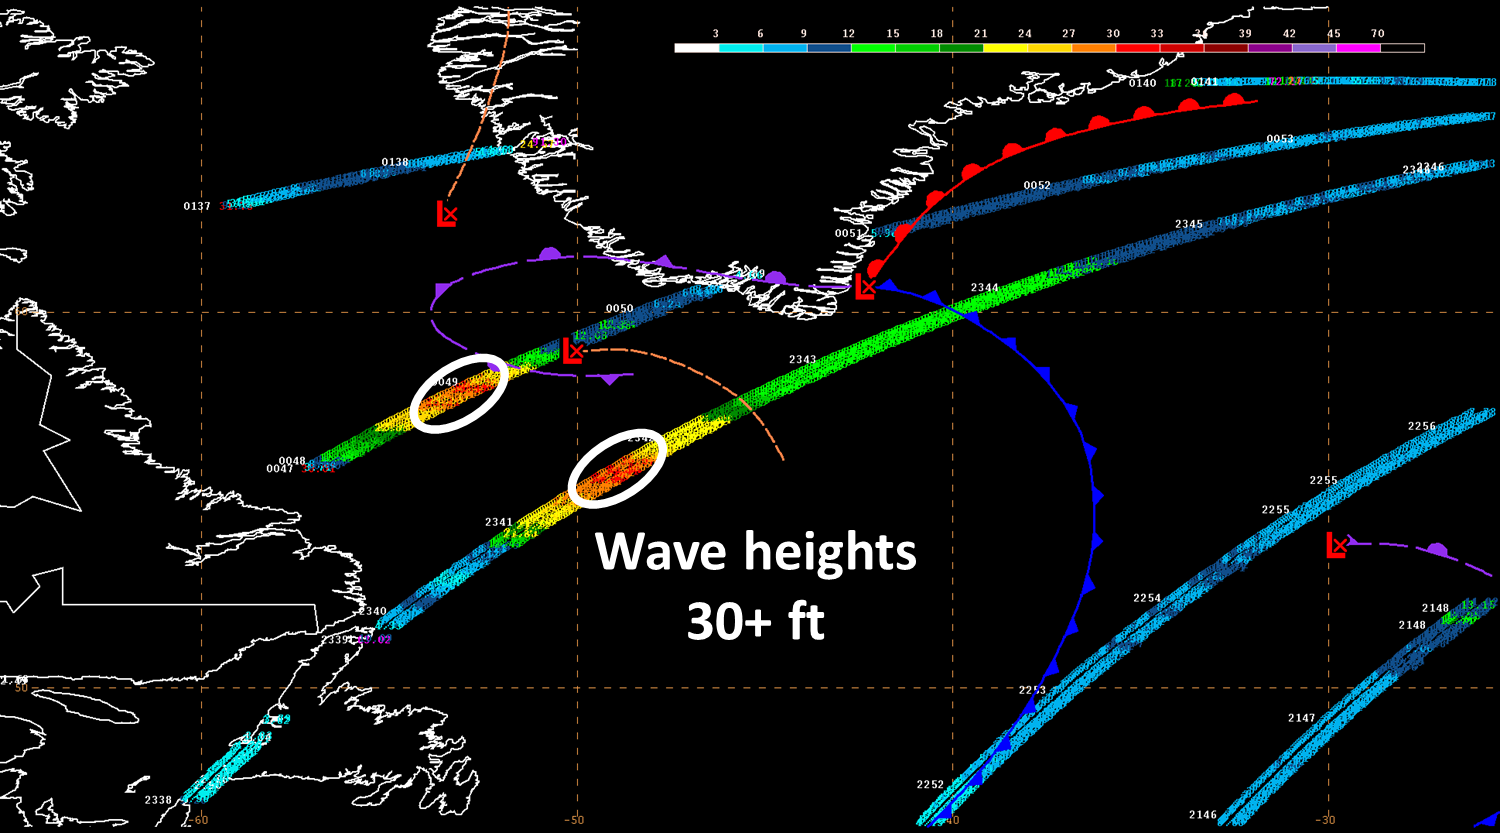 Wave heights measured by the Jason-2 and Jason-3 satellites